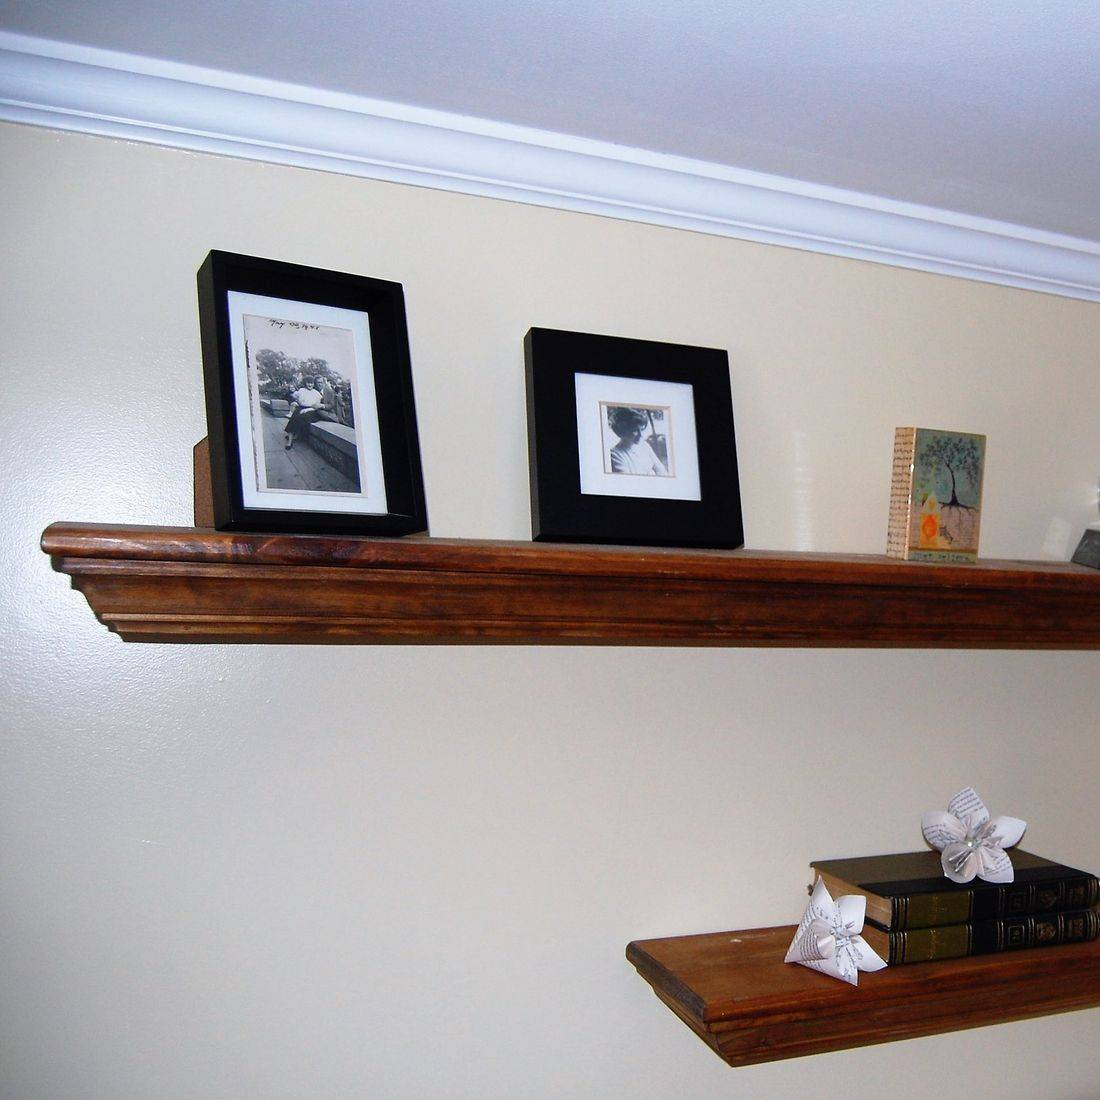 Floating shelves with home accents